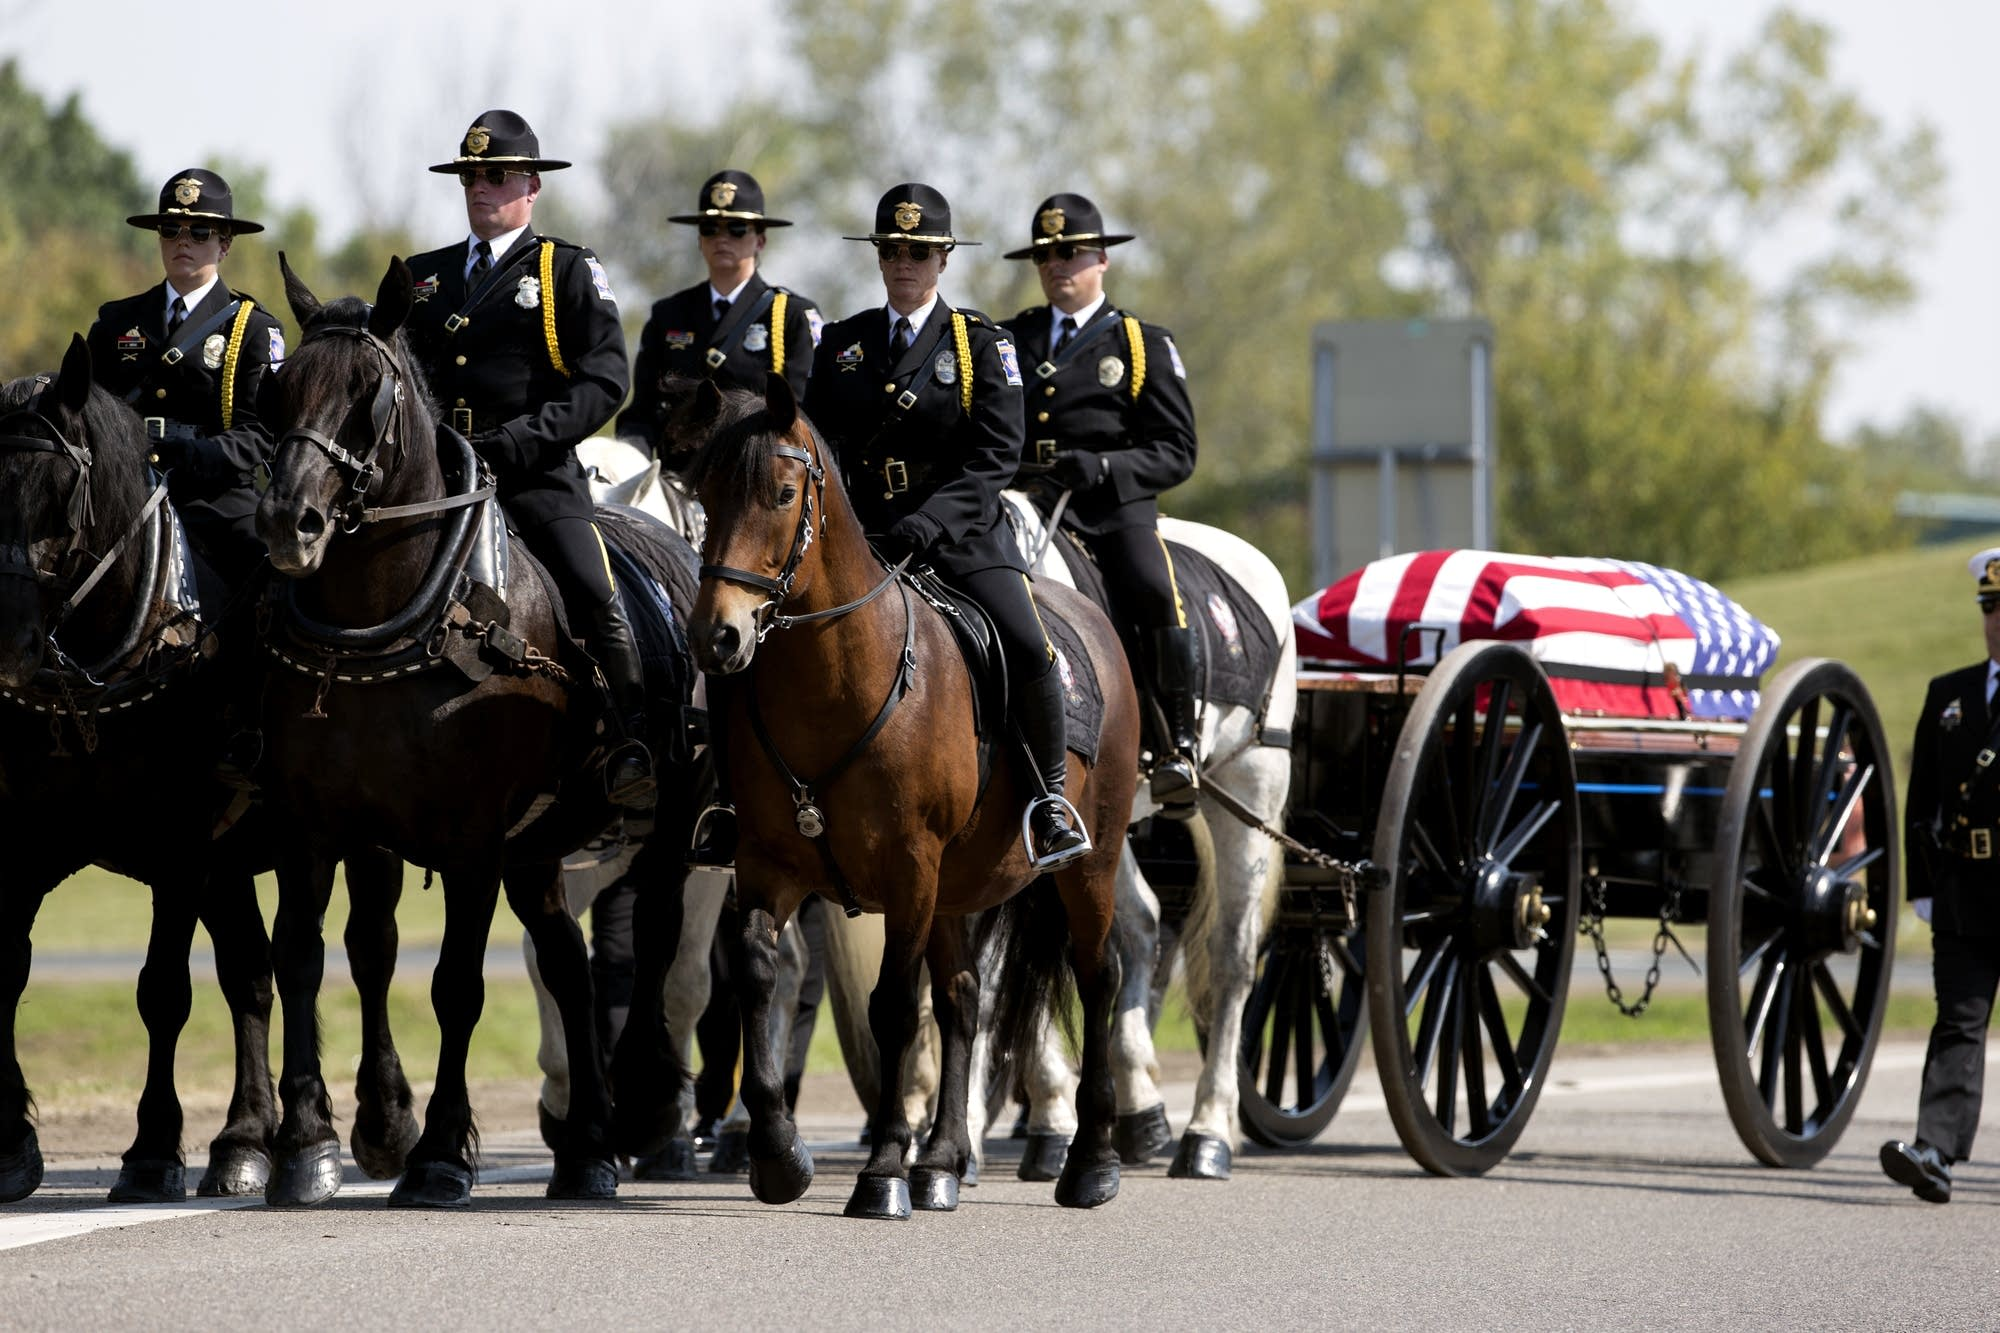 Officer Bill Mathews' casket is escorted to the grave site.